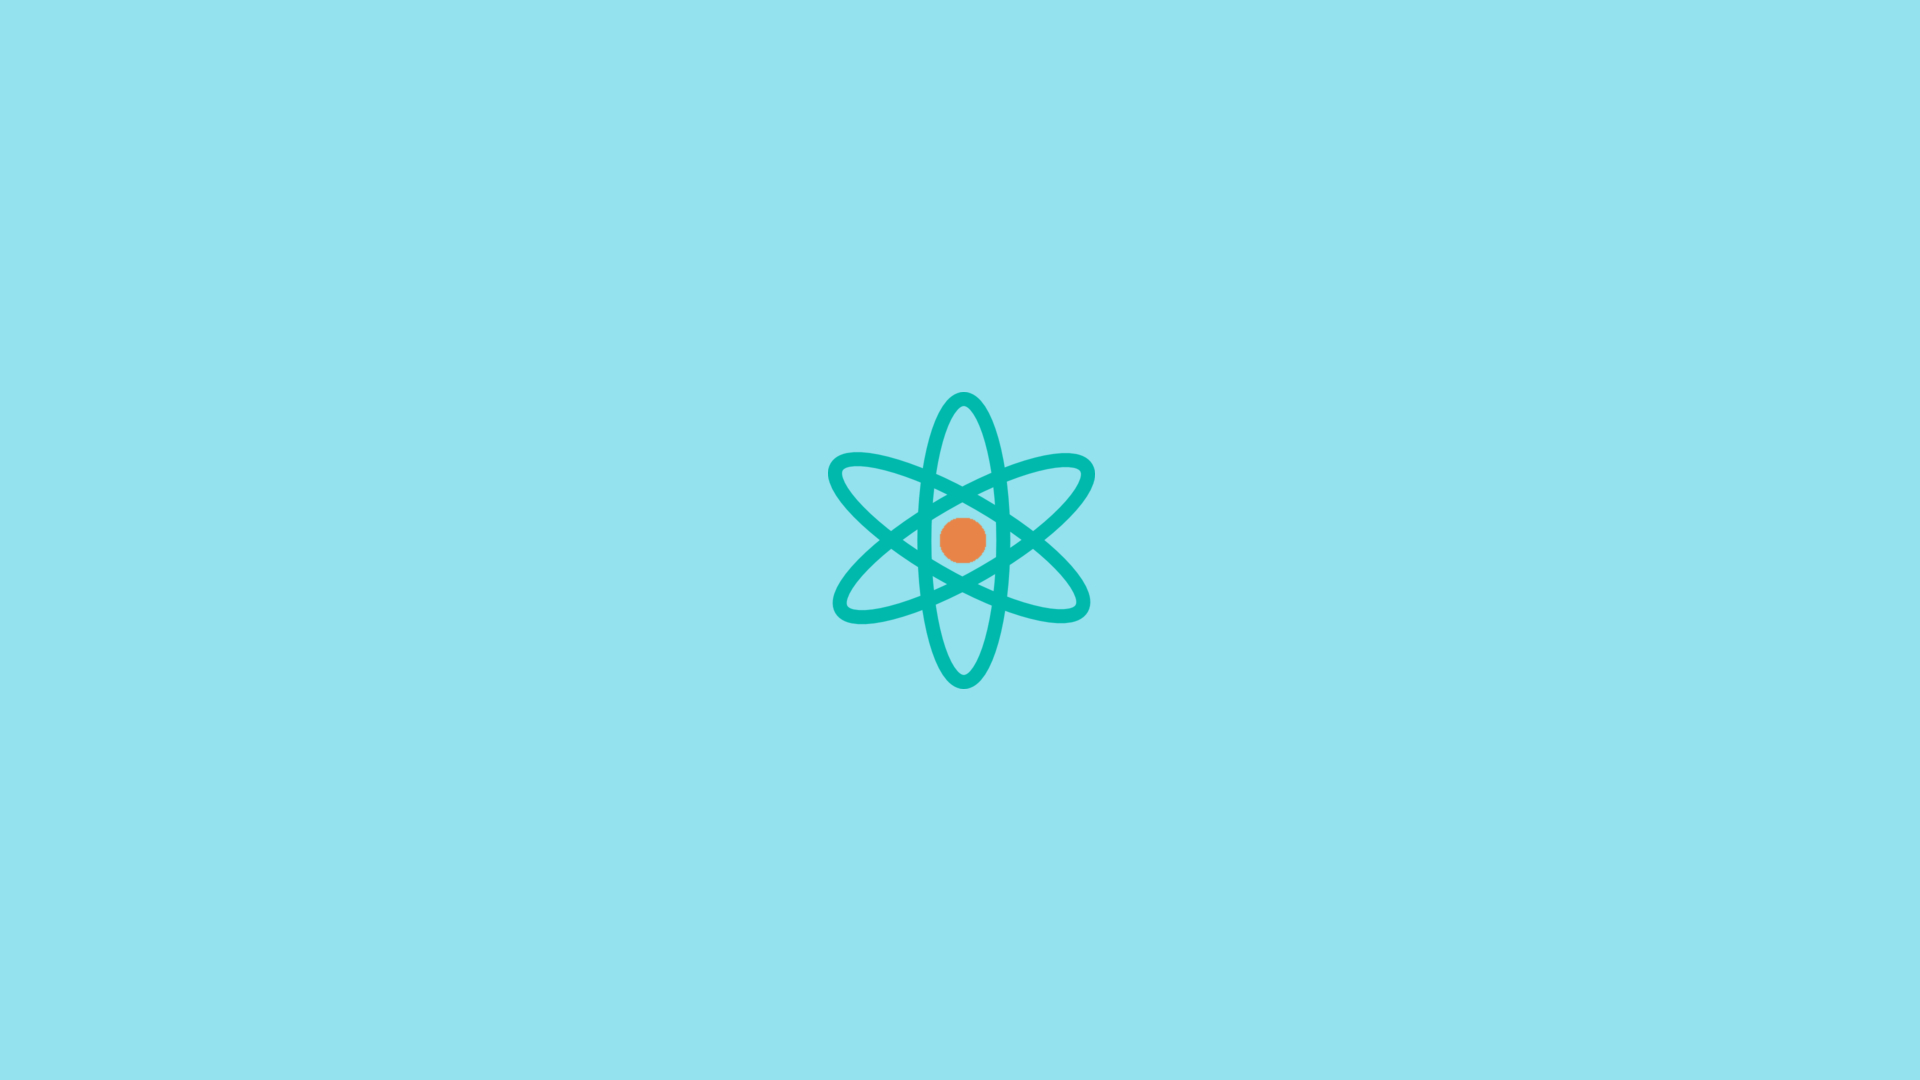 Minimal atom wallpaper 1920x1080 by dssdiego on deviantart for Deviantart minimal wallpaper